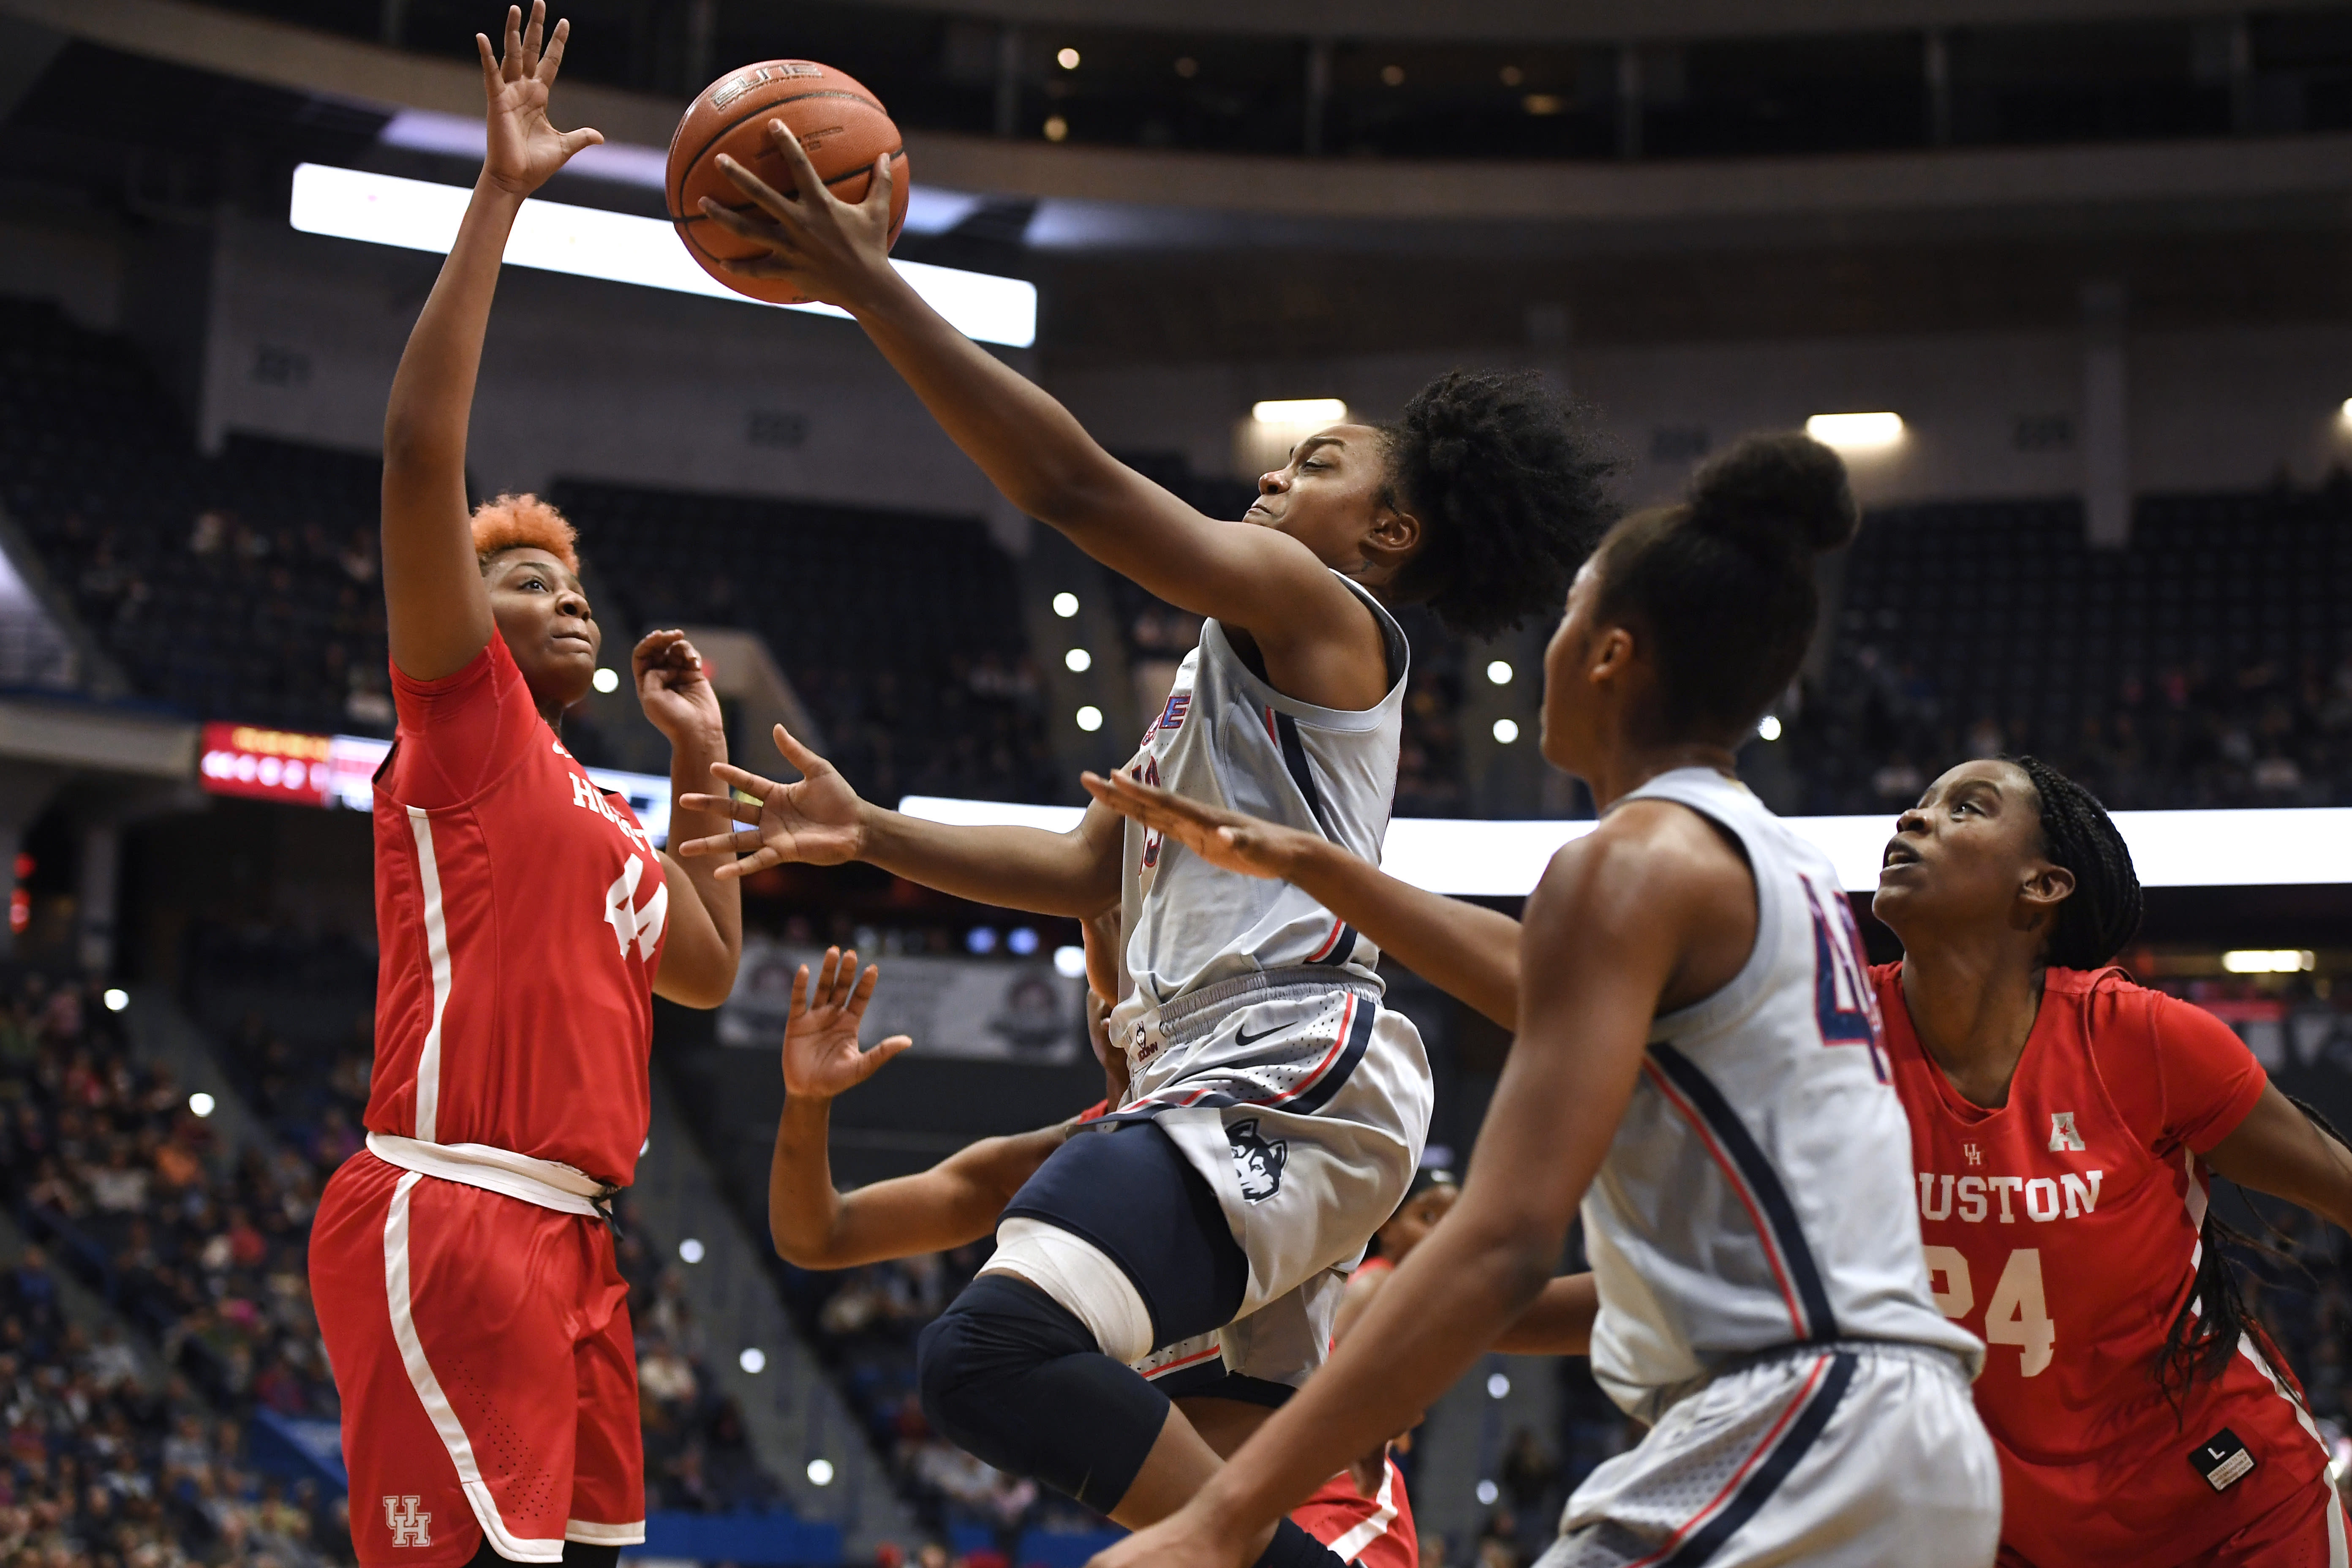 For first time in 99 games, UConn women lose at home